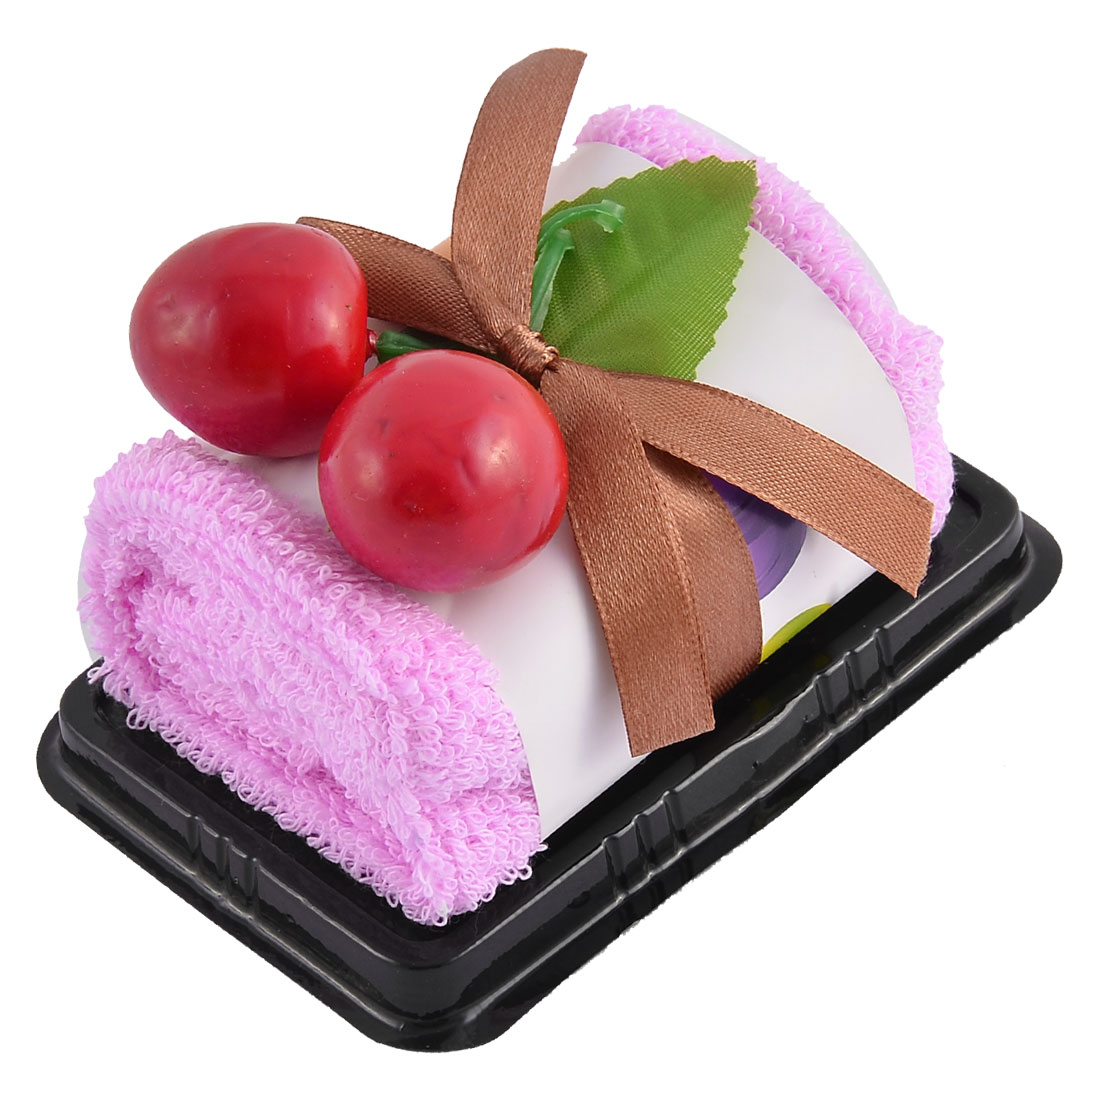 Plastic Simulated Cherry Decor Square Roll Cake Towel Gift Ornament Pink